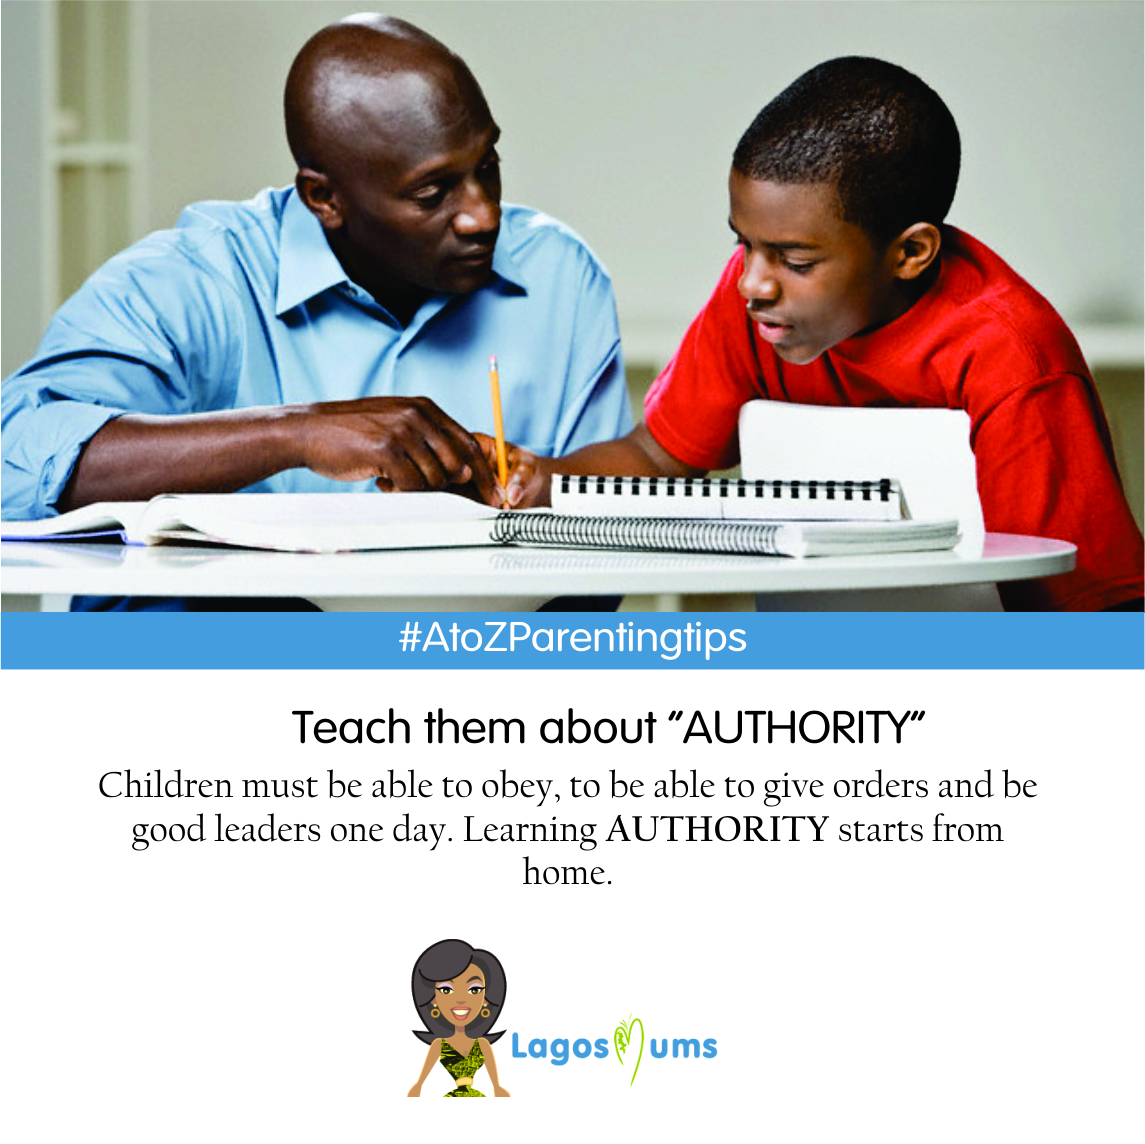 Parenting Tips on Authority